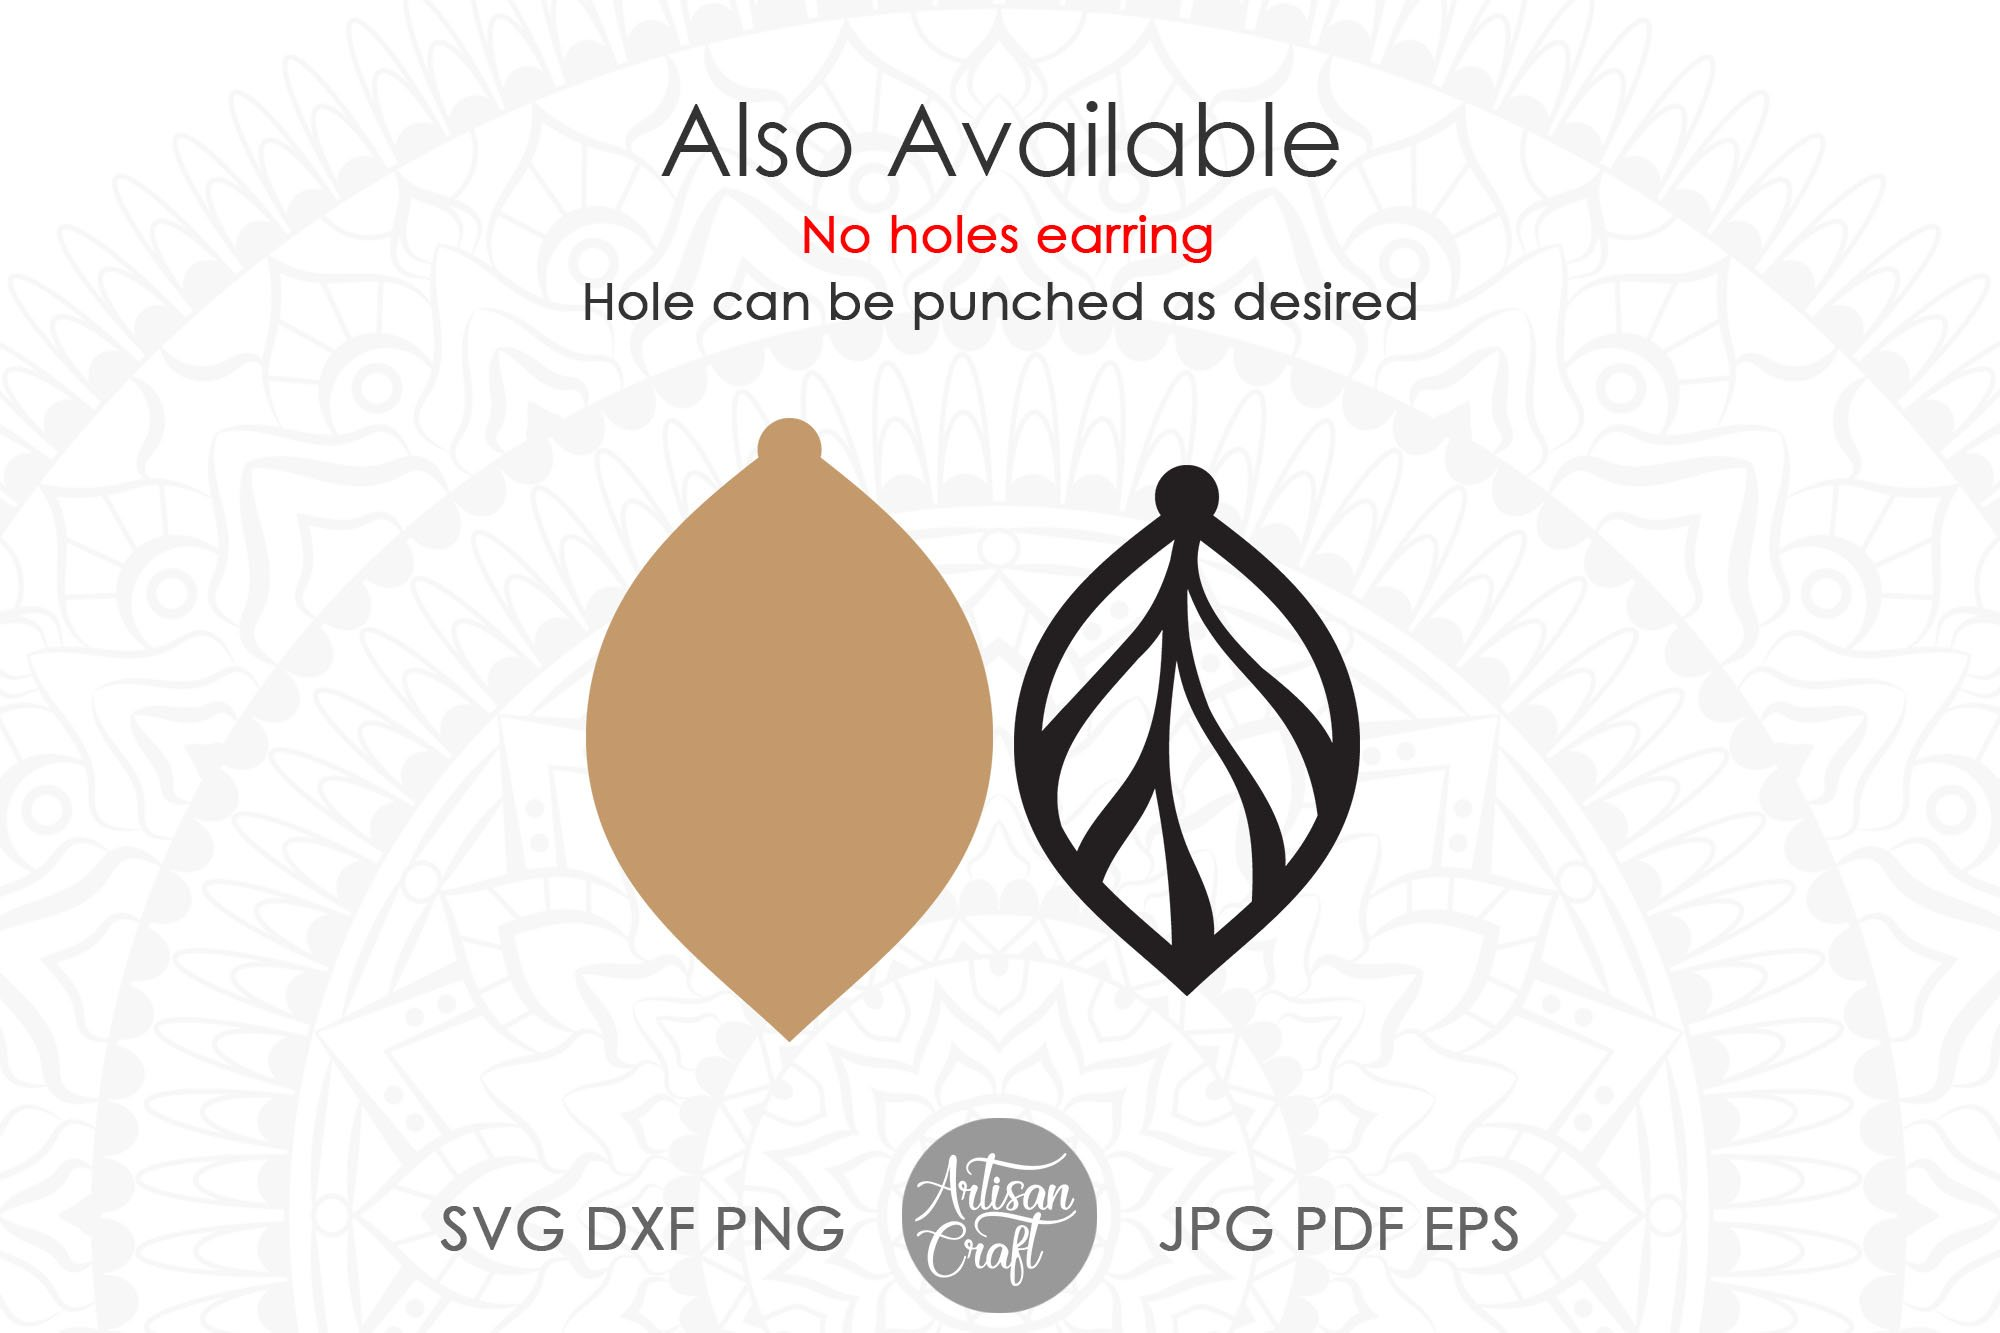 Leaf earring svg, faux leather earrings template example image 2